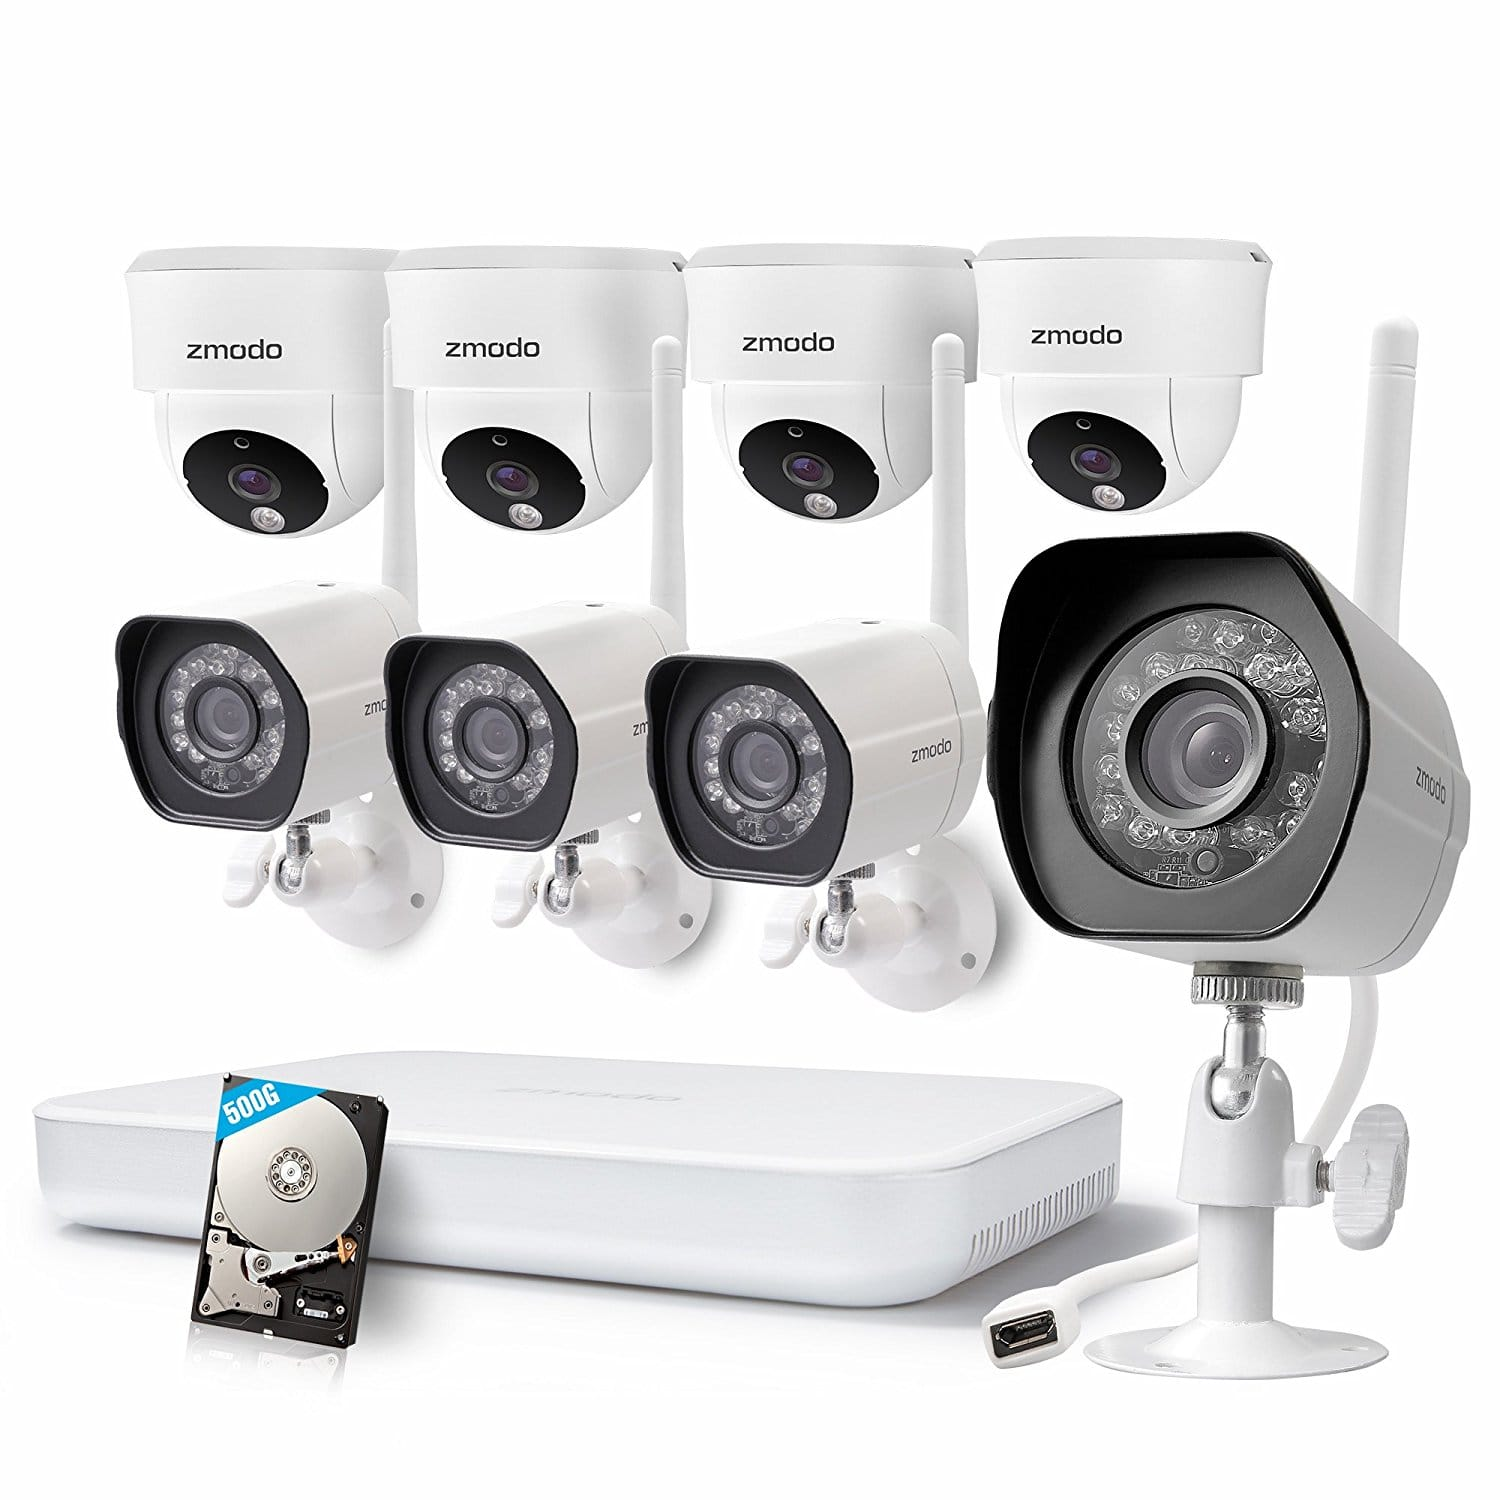 8pack Wireless 720p Outdoor/Indoor Security Cameras System + 1080p HDMI NVR + 500GB HDD for $220